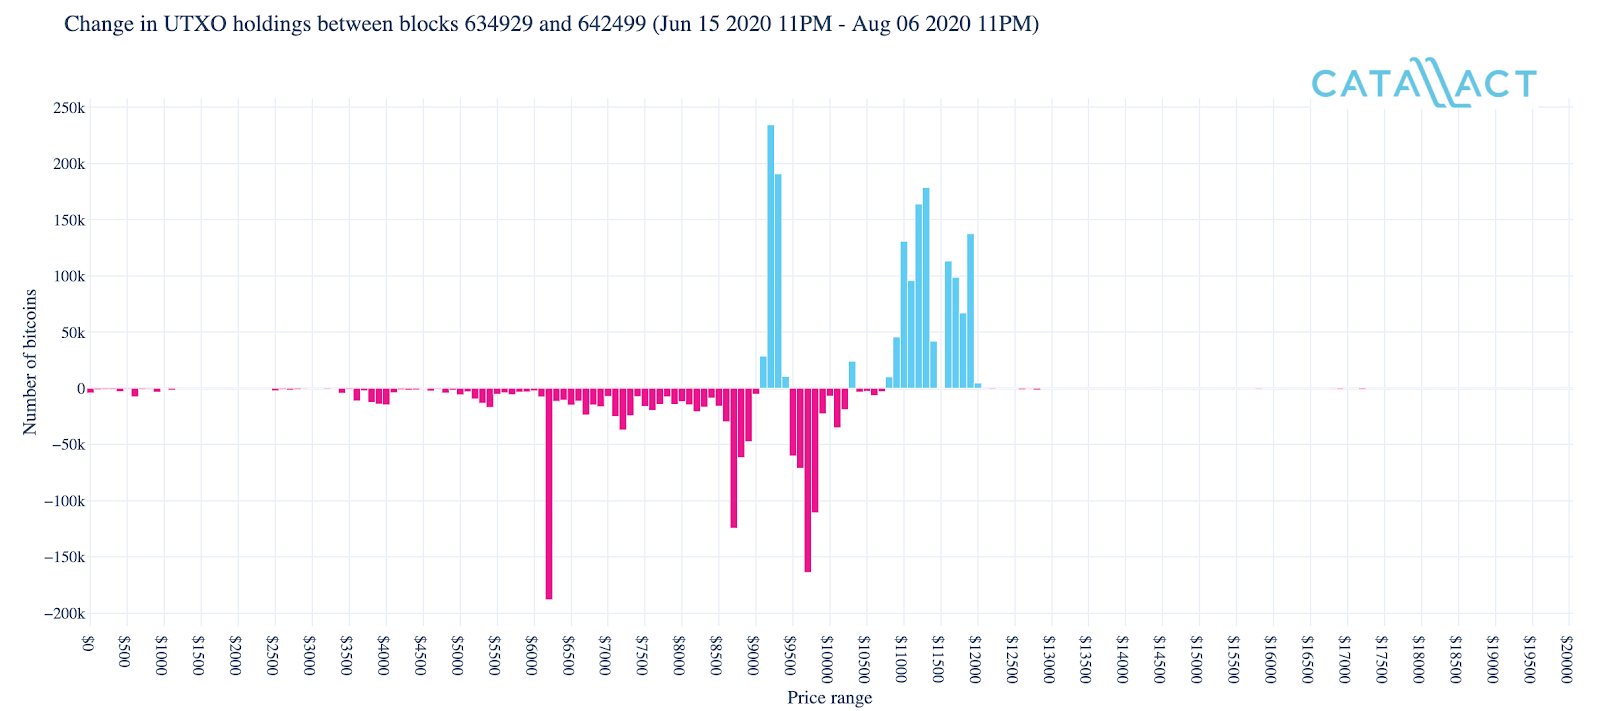 Change in Bitcoin UTXO holdings across various Bitcoin price points